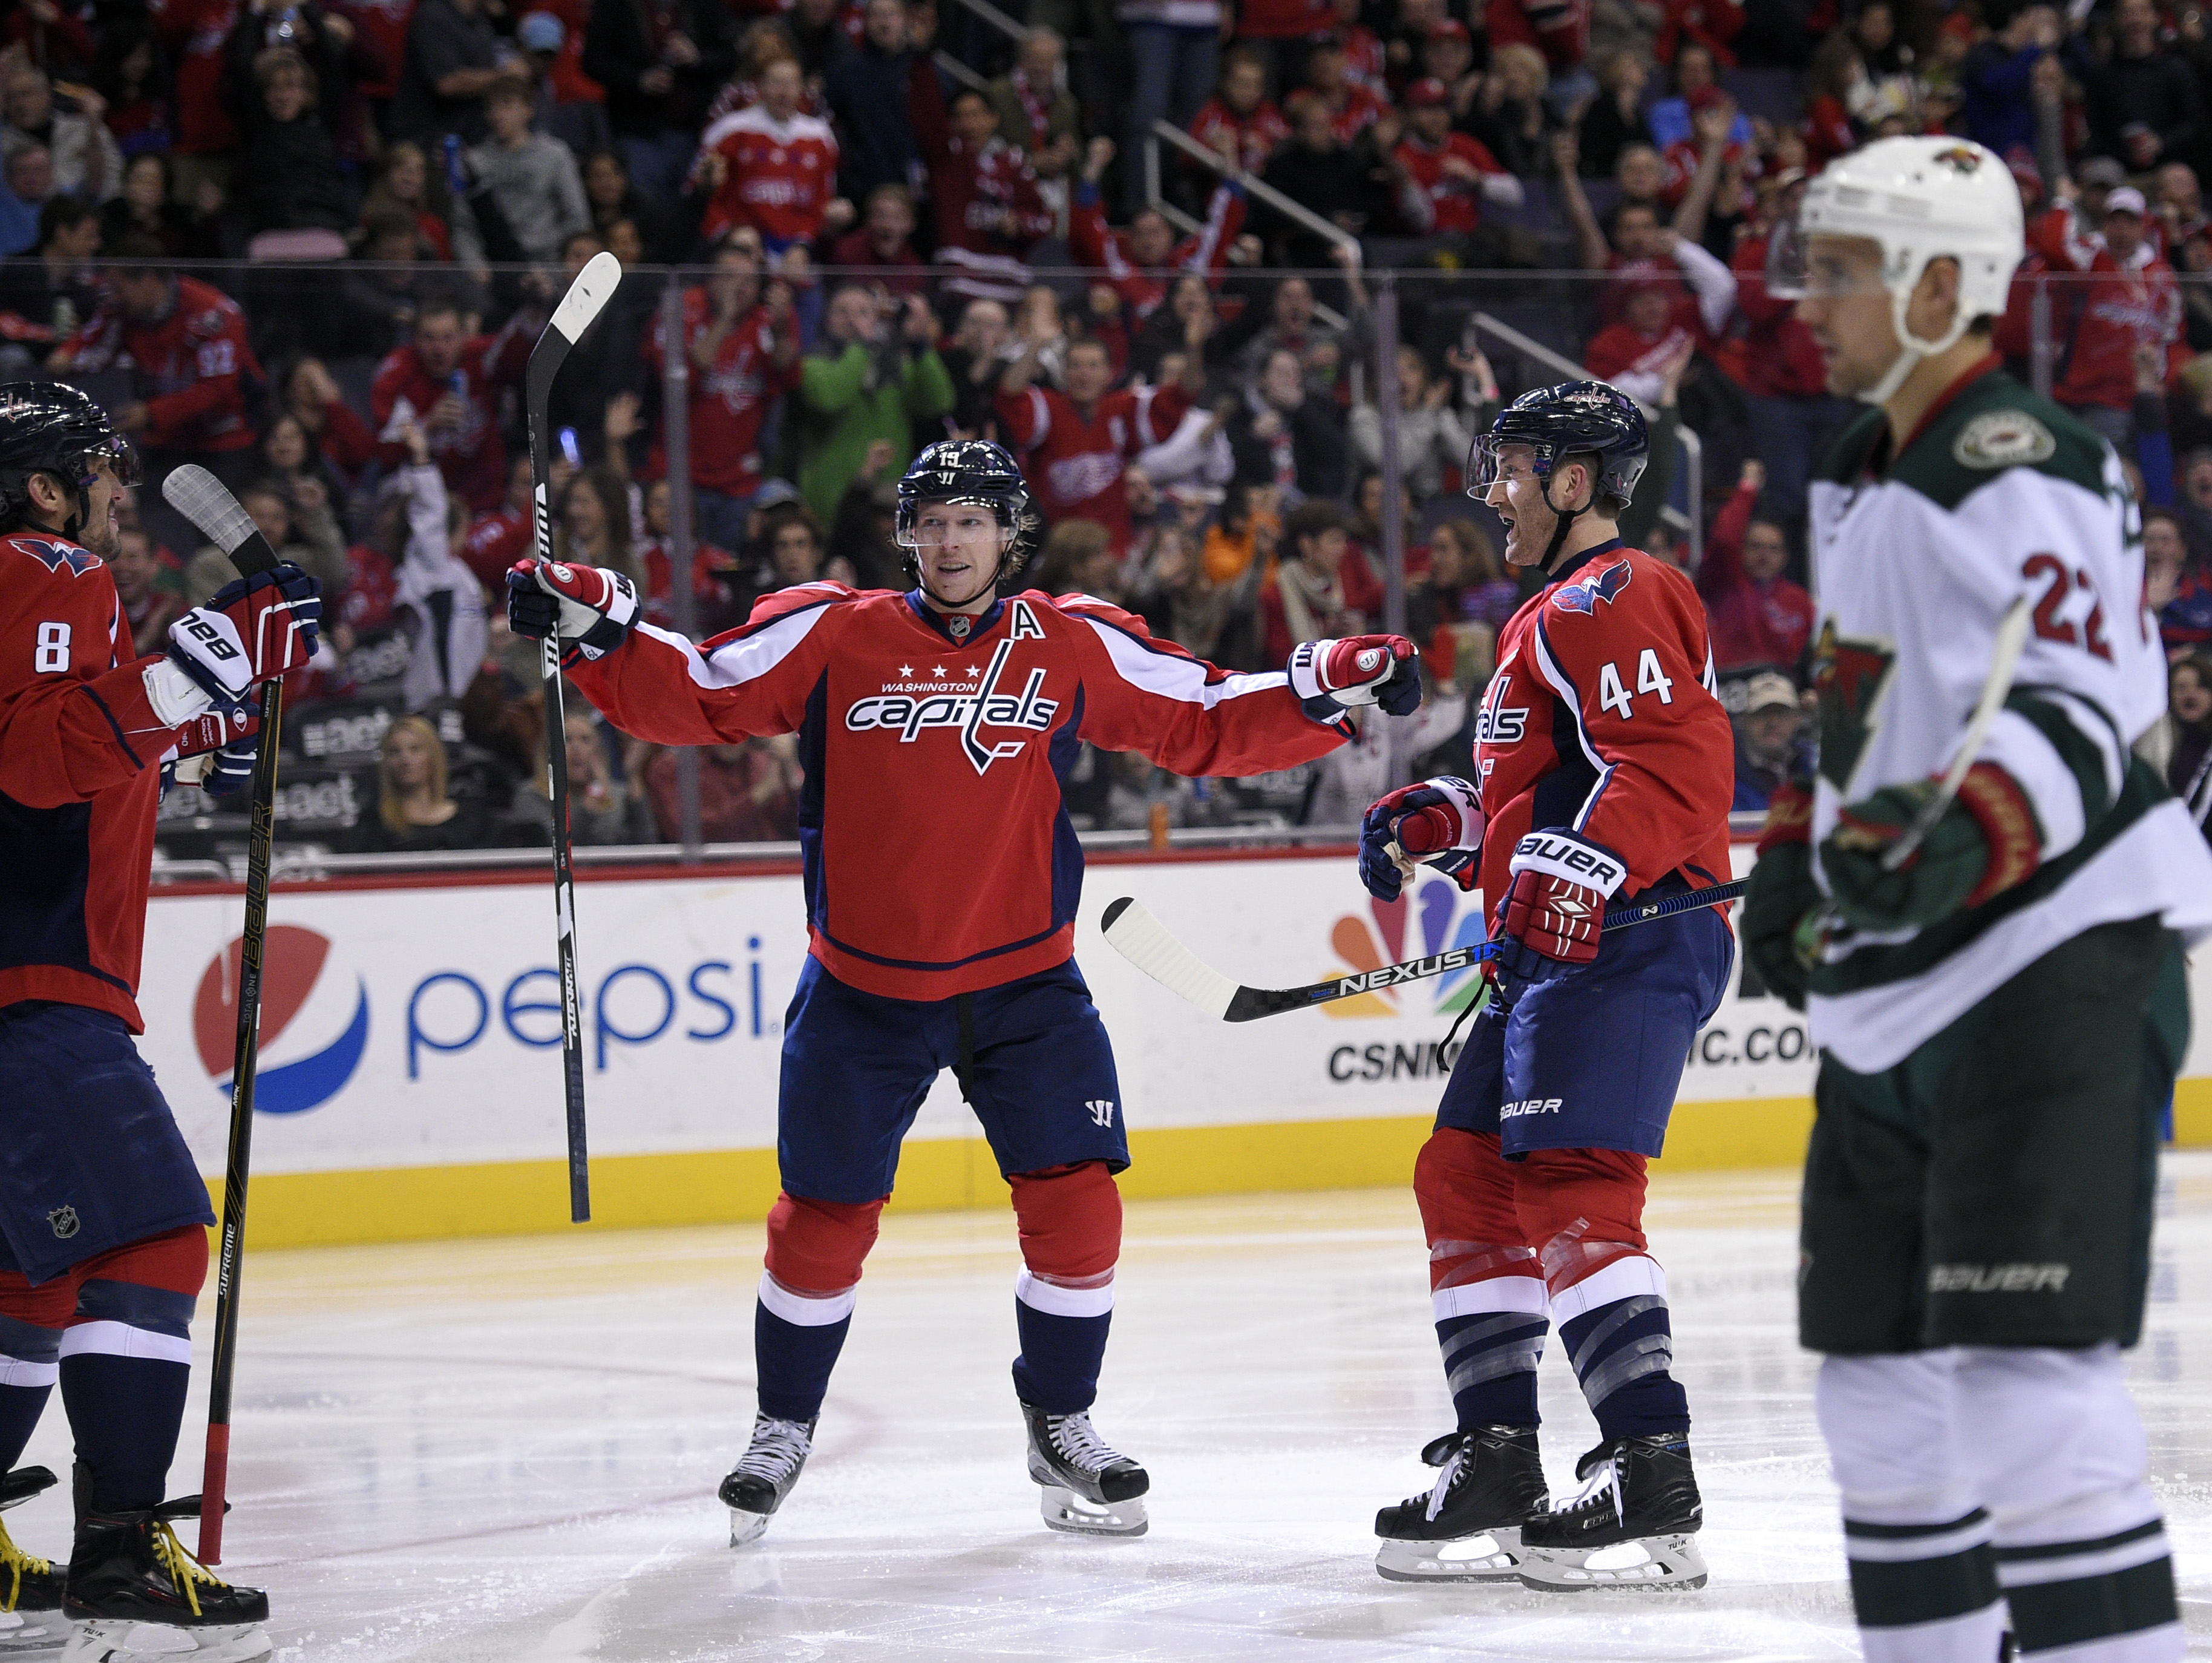 Washington Capitals defenseman Brooks Orpik (44) celebrates his goal with center Nicklas Backstrom (19), of Sweden, and left wing Alex Ovechkin (8), of Russia, during the second period of an NHL hockey game, as Minnesota Wild right wing Nino Niederreiter